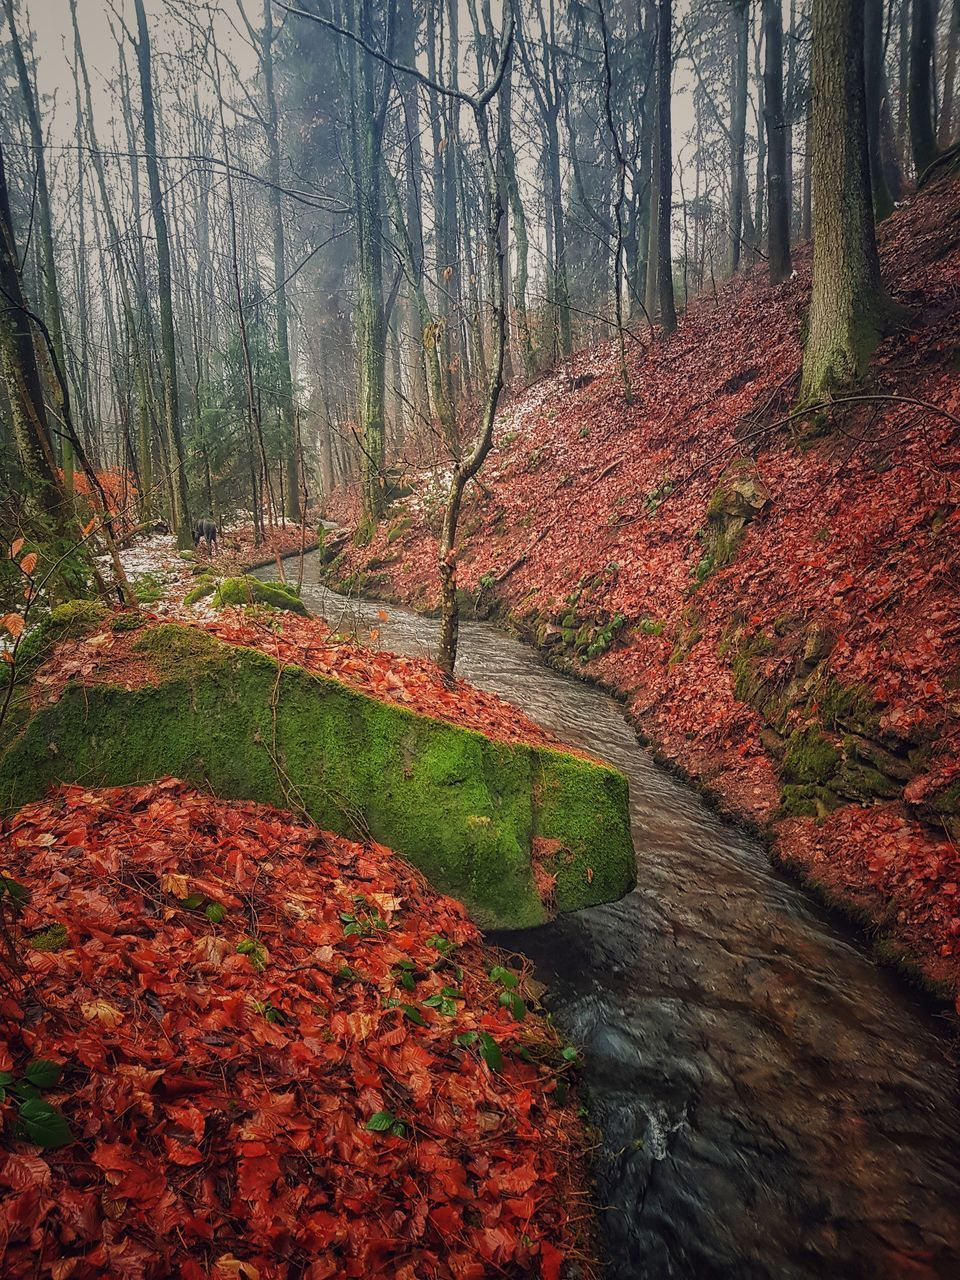 tree, plant, forest, beauty in nature, land, tranquility, change, nature, autumn, tranquil scene, scenics - nature, trunk, tree trunk, no people, non-urban scene, day, growth, woodland, the way forward, direction, outdoors, stream - flowing water, flowing water, fall, autumn collection